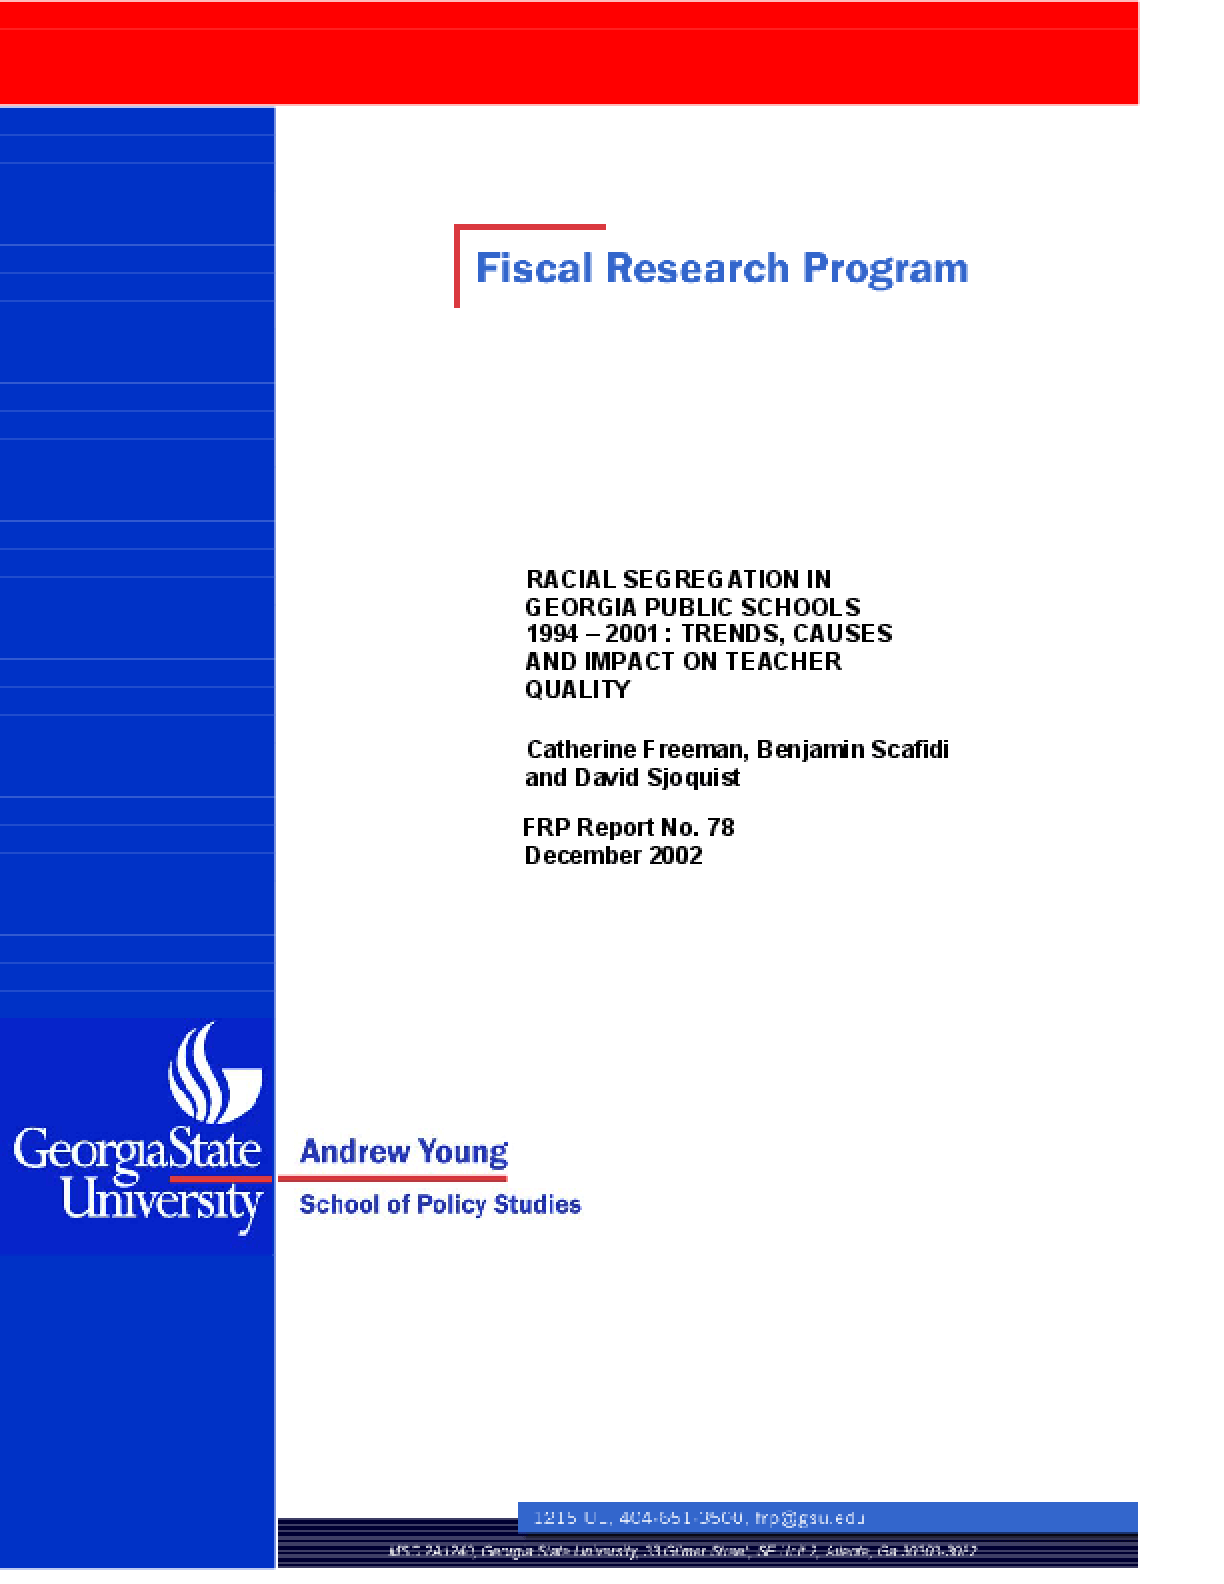 Racial Segregation in Georgia Public Schools, 1994-2001: Trends, Causes, and Impact on Teacher Quality